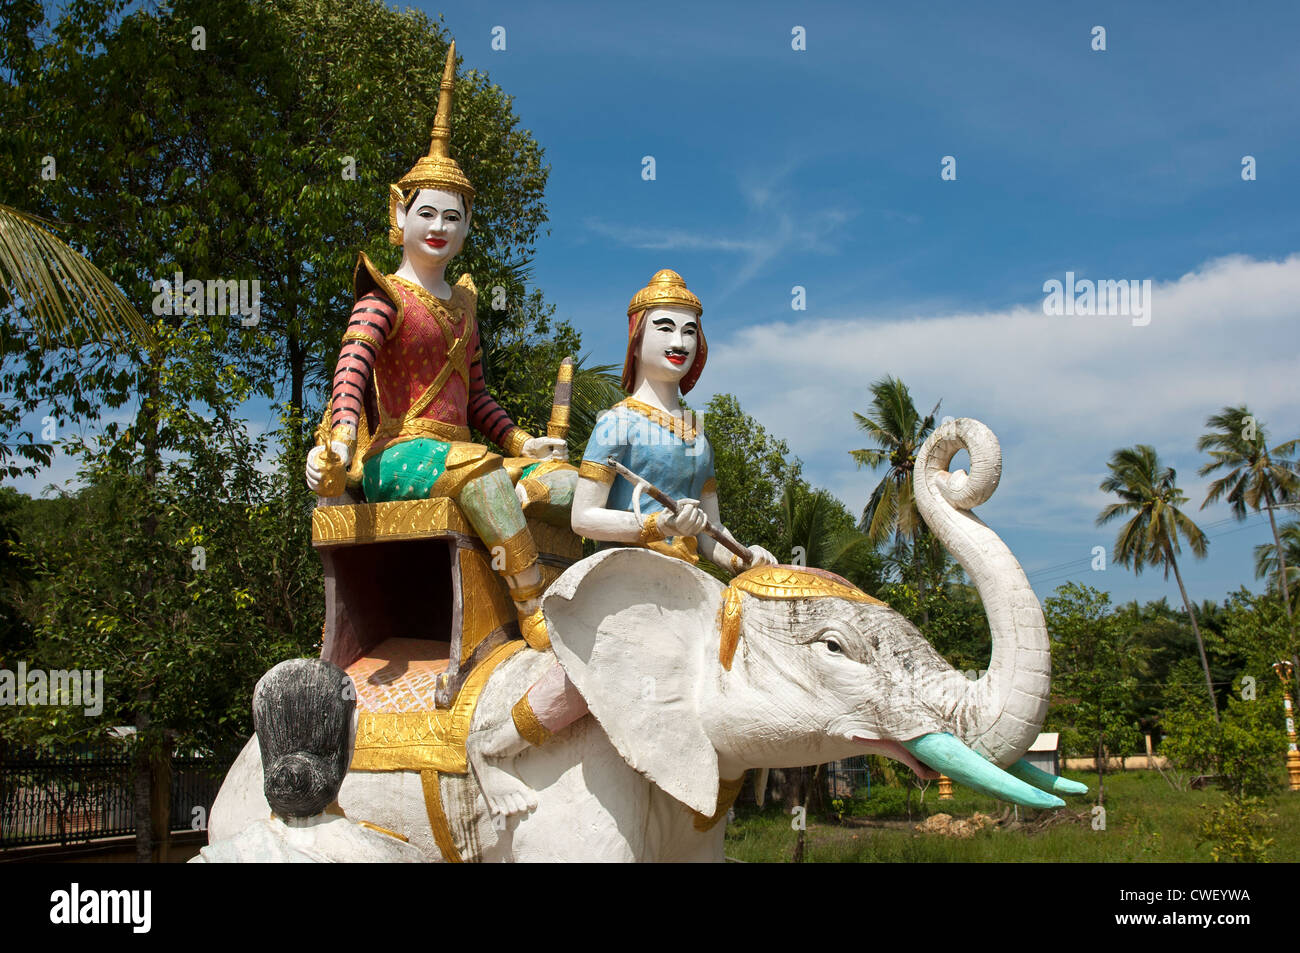 Statue of a white elephant with figures of the Buddhist mythology at the Kampong Ampil monastery, Battambang, Cambodia - Stock Image